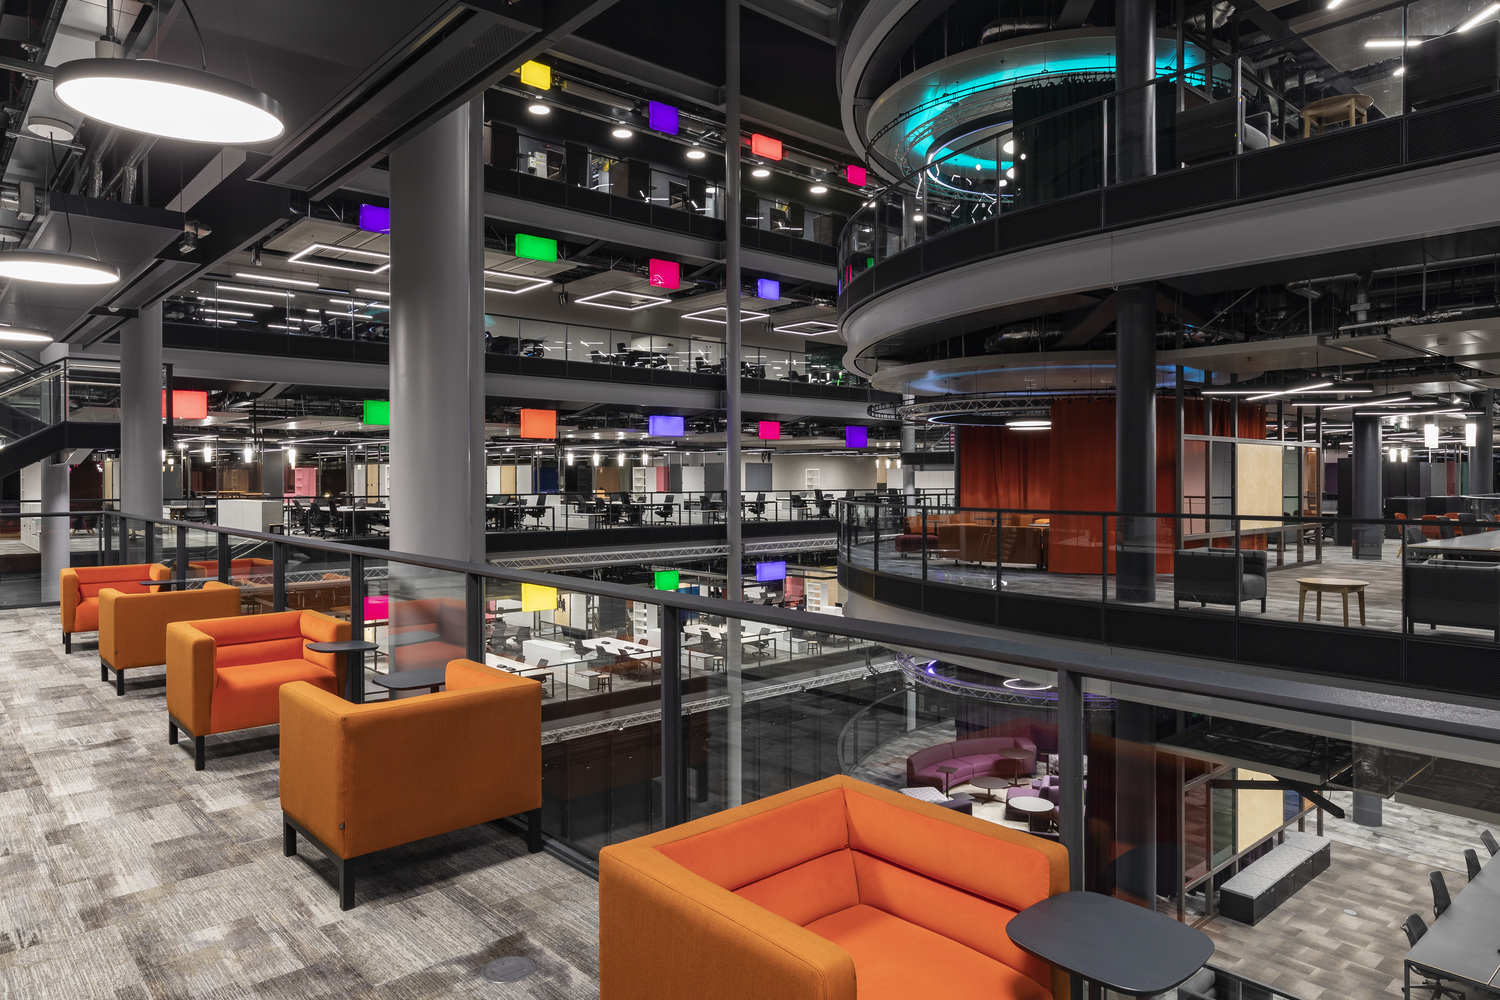 BBC breakout spaces fit out